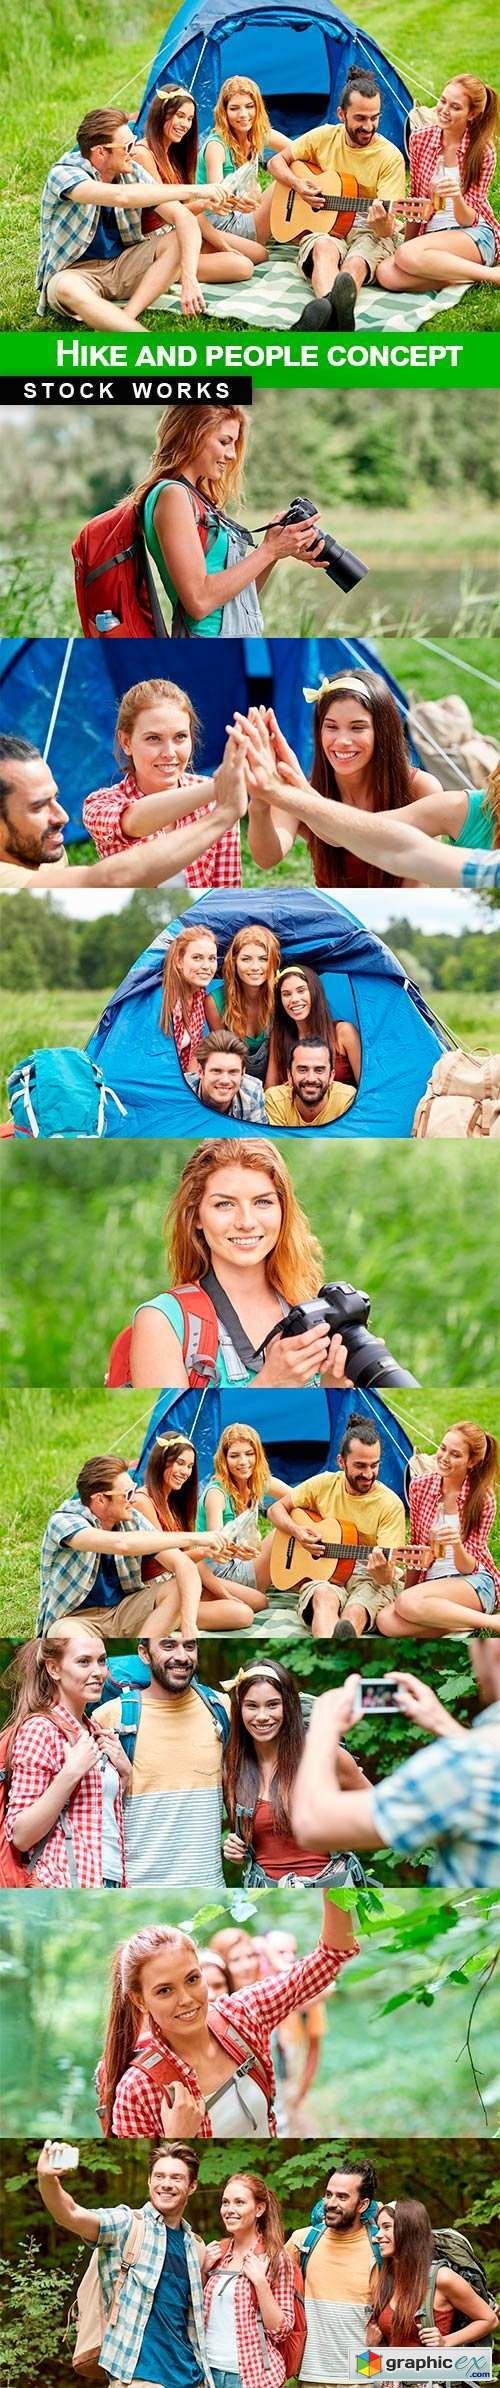 Hike and people concept - 9 UHQ JPEG